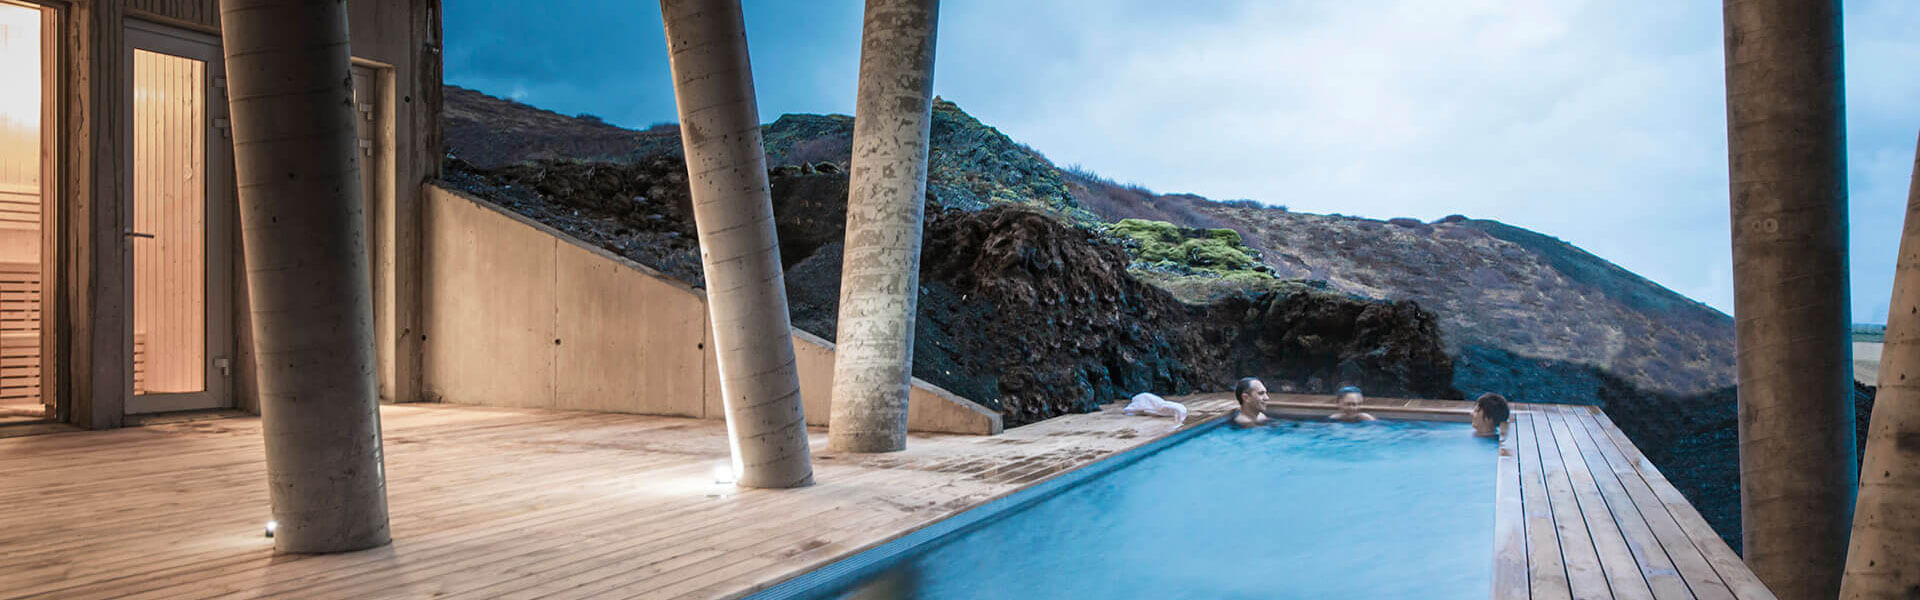 The lava spa outdoor swimming pool spa at northern lights over Ion adventure hotel luxury hotel in the Golden Circle Iceland